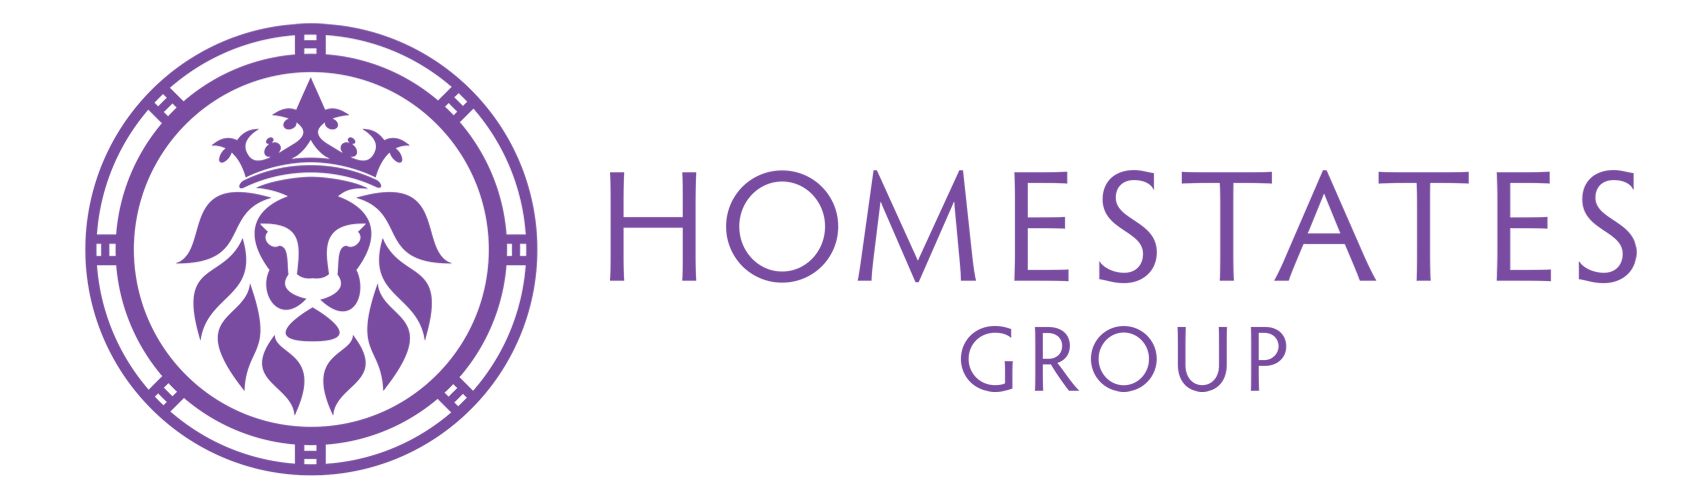 Homestates Group